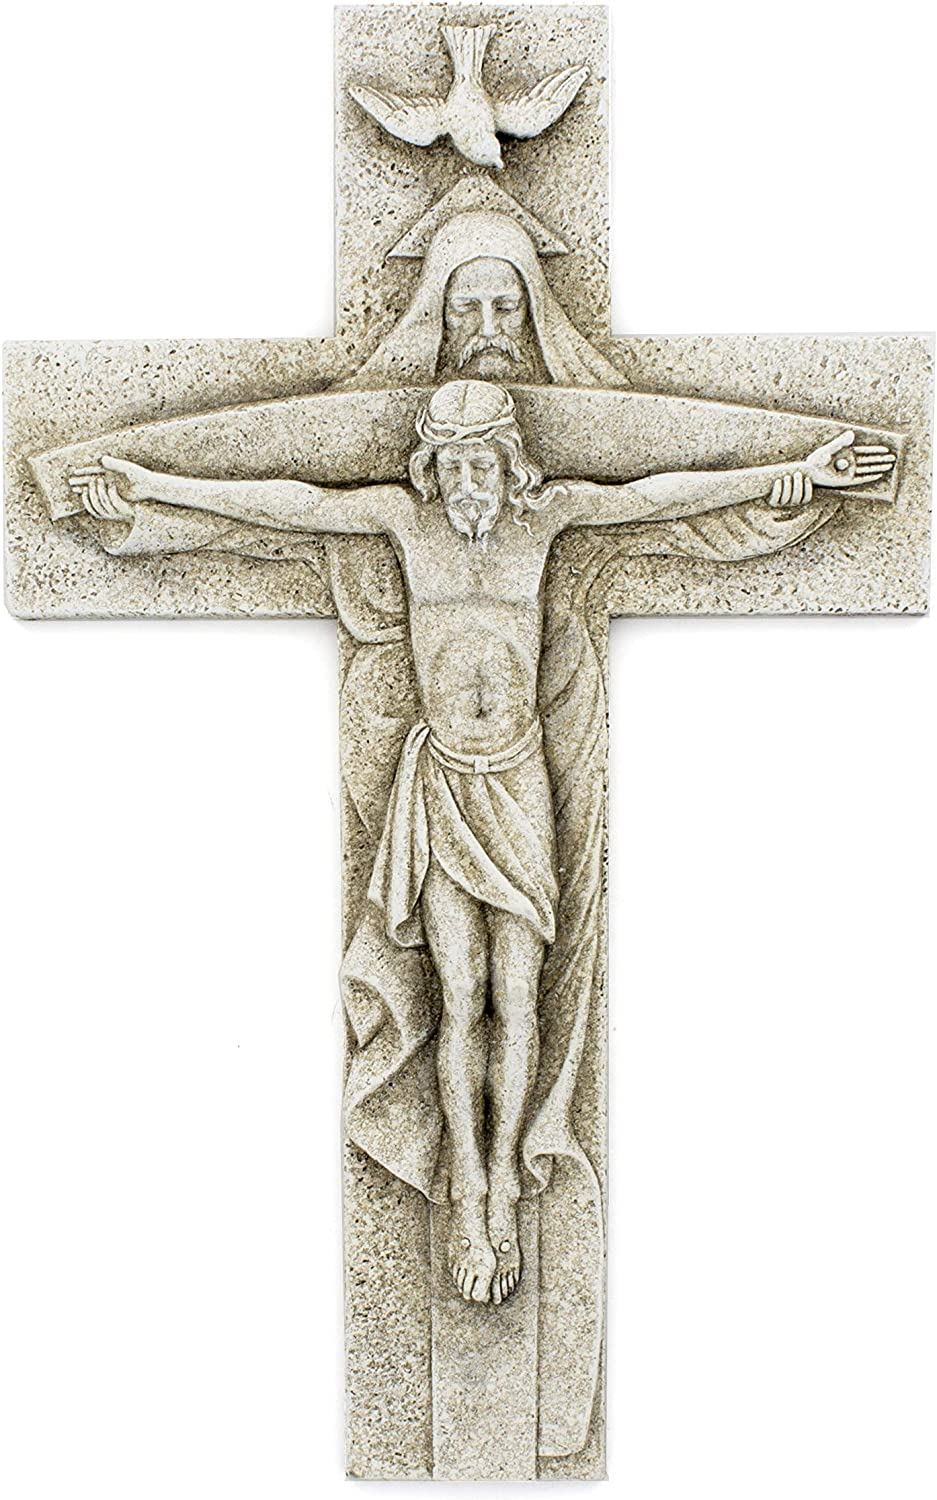 Elysian Gift Shop Holy Trinity Garden Cross Father Son and Holy Spirit 12